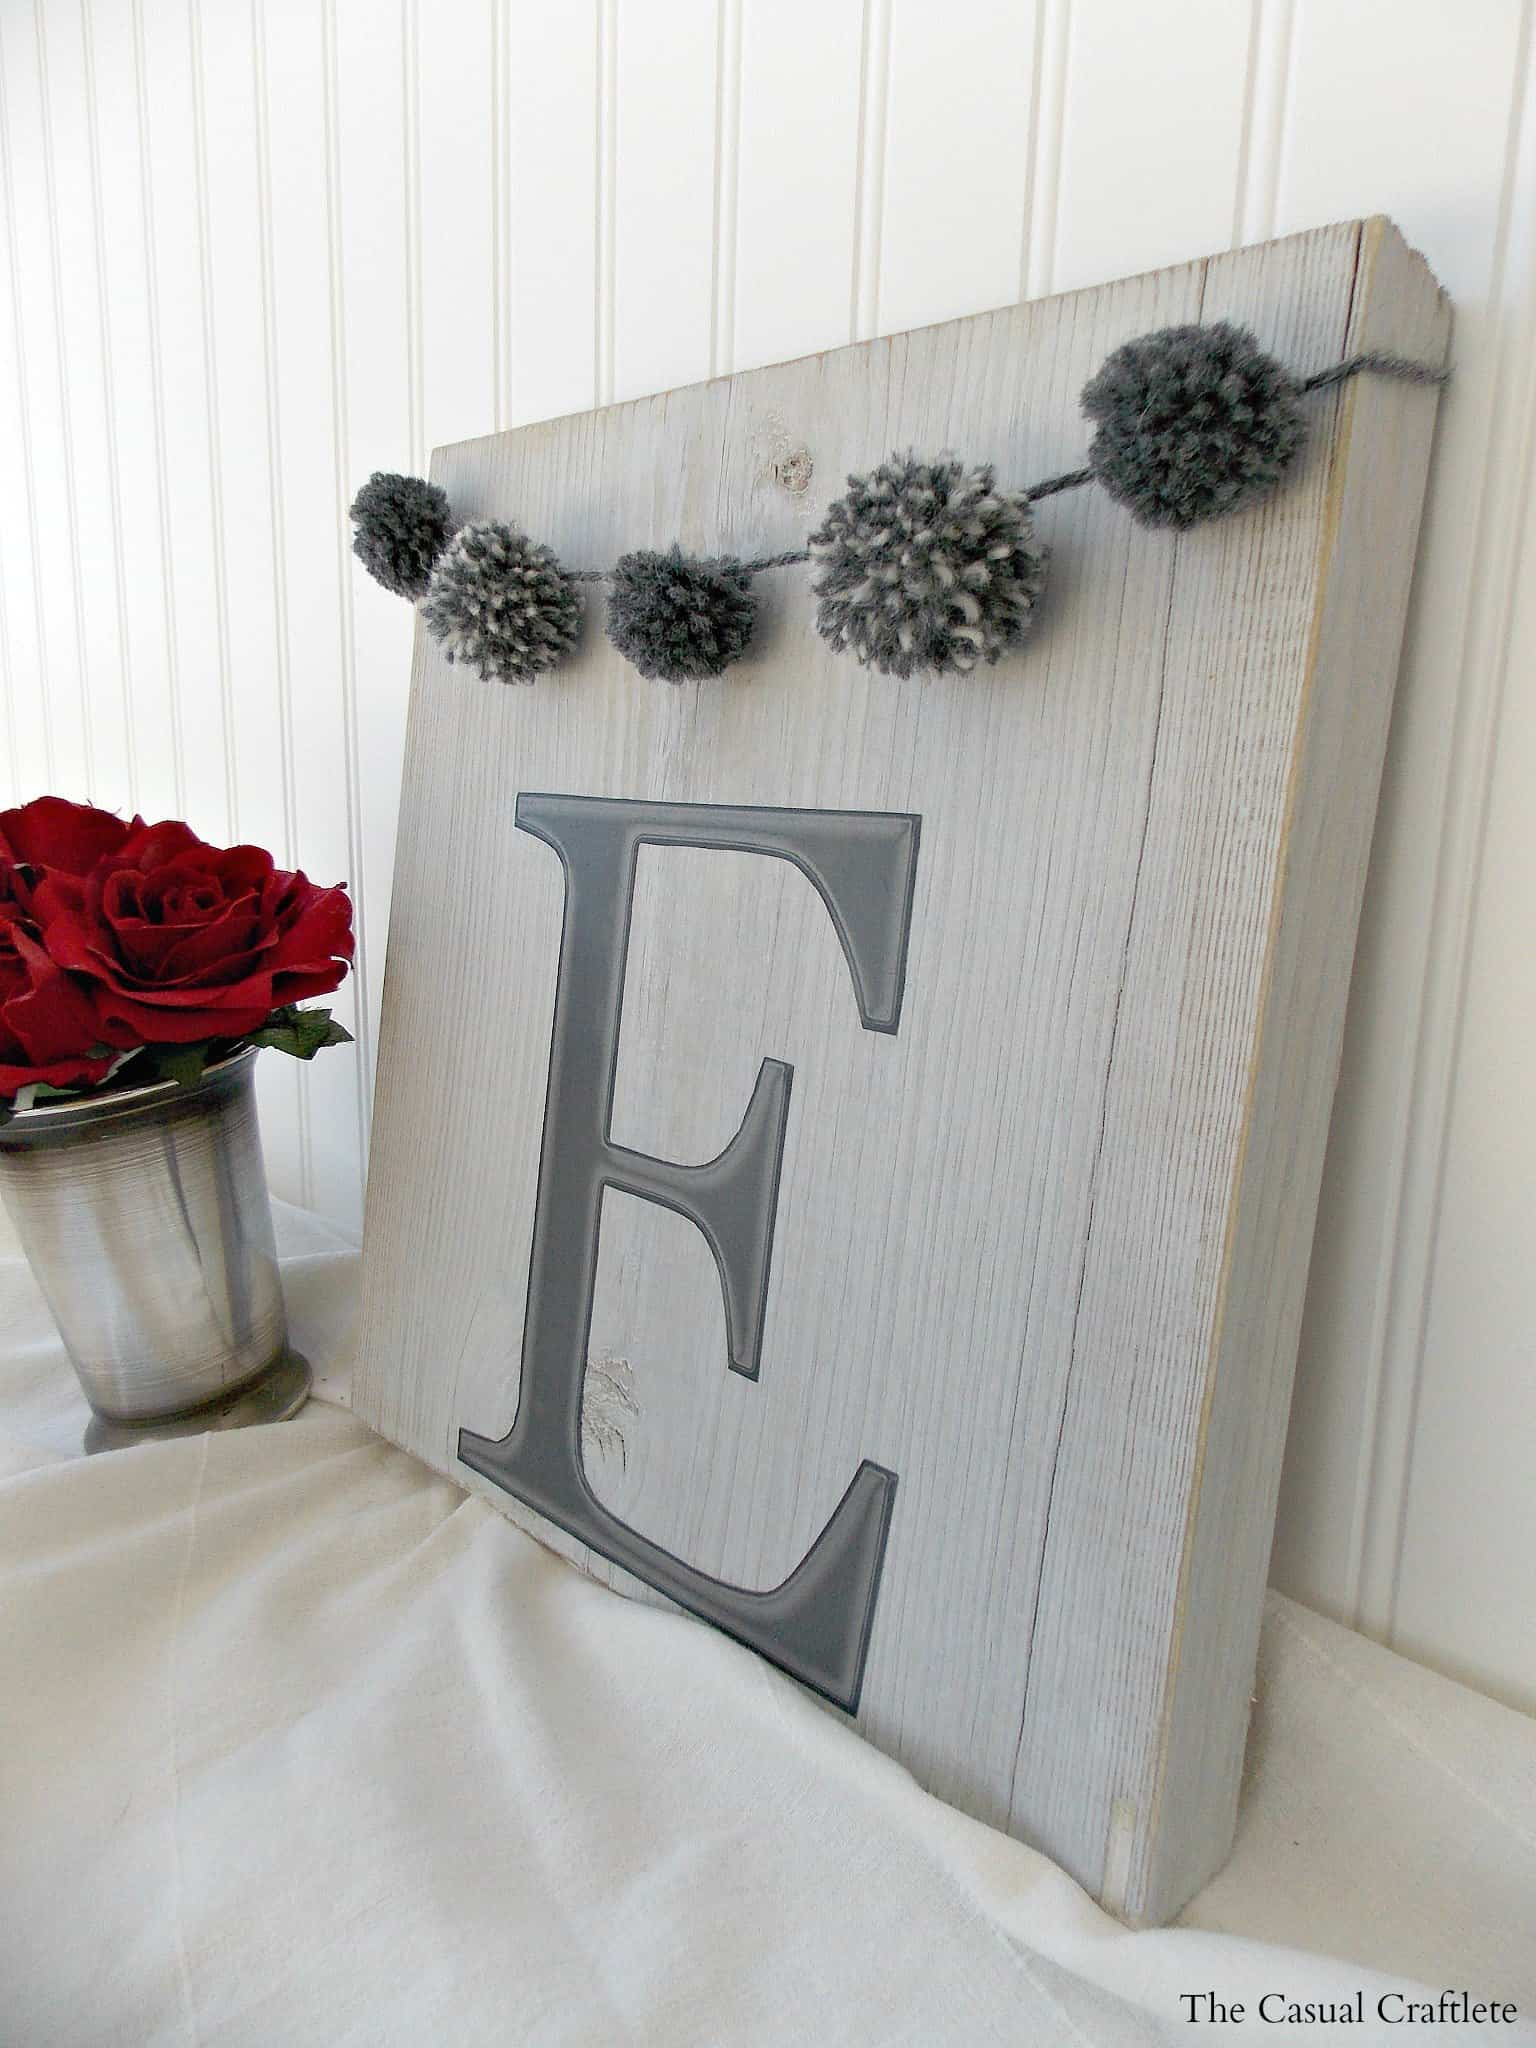 DIY Monogram Wood Plaque with pom pom garland 2